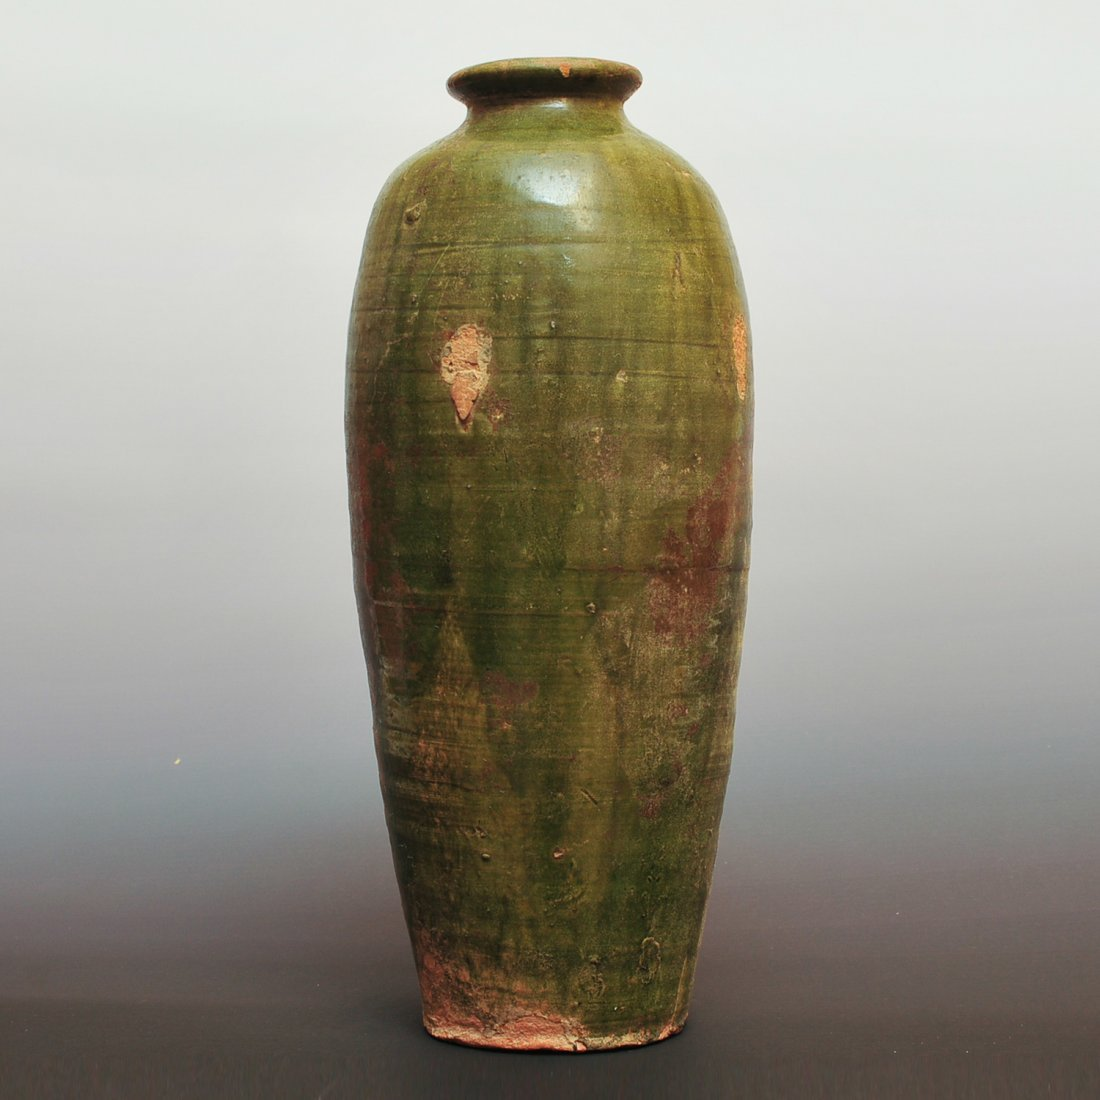 Tang Dynasty, A Chinese Celadon Glazed Vase